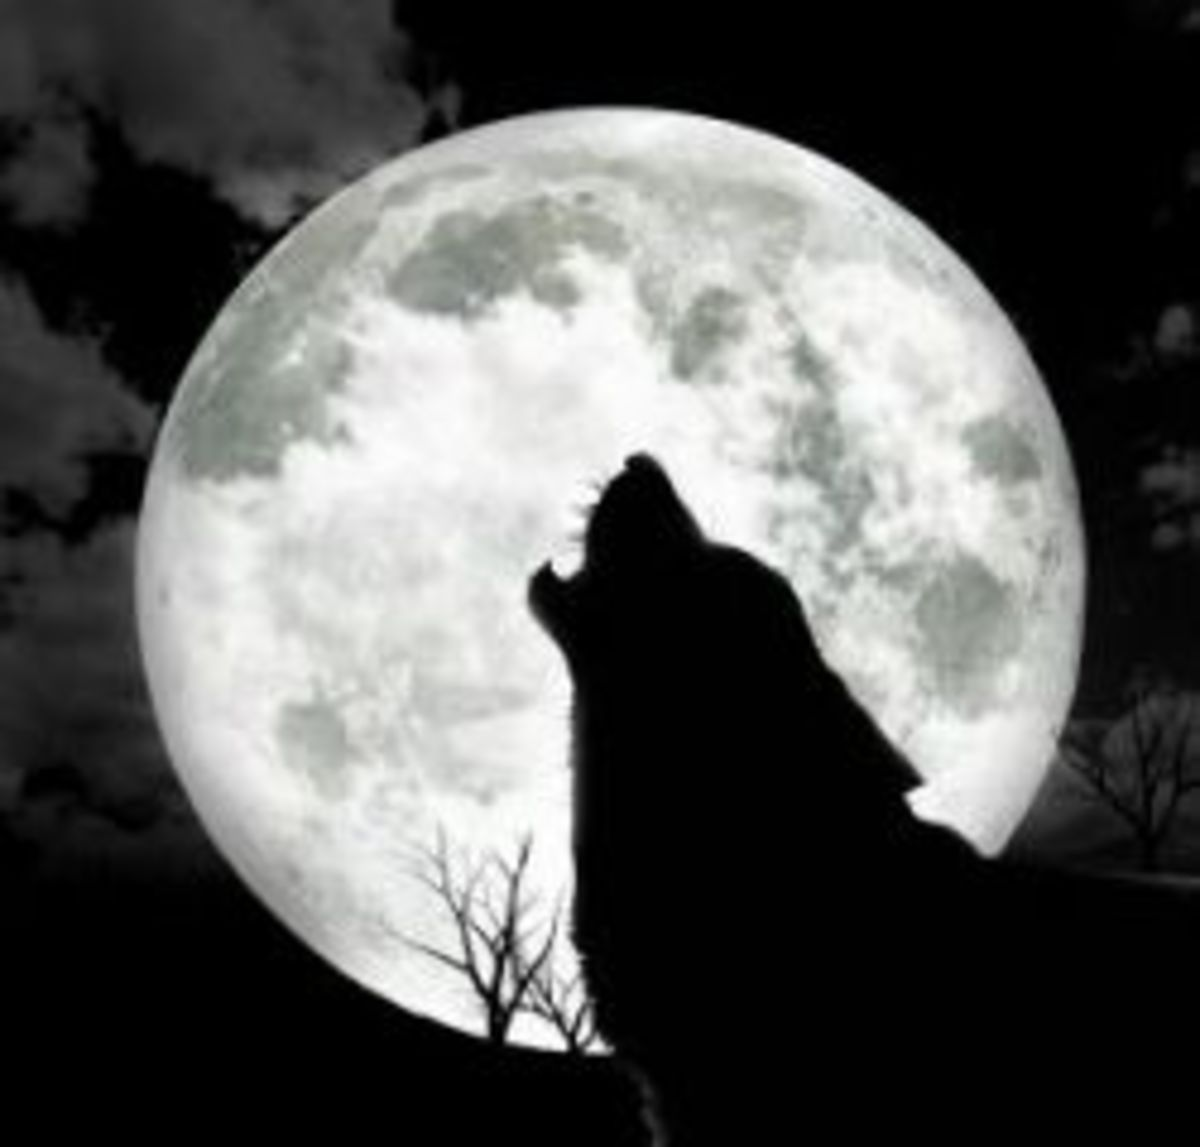 A howling wolf silhouetted against a full moon